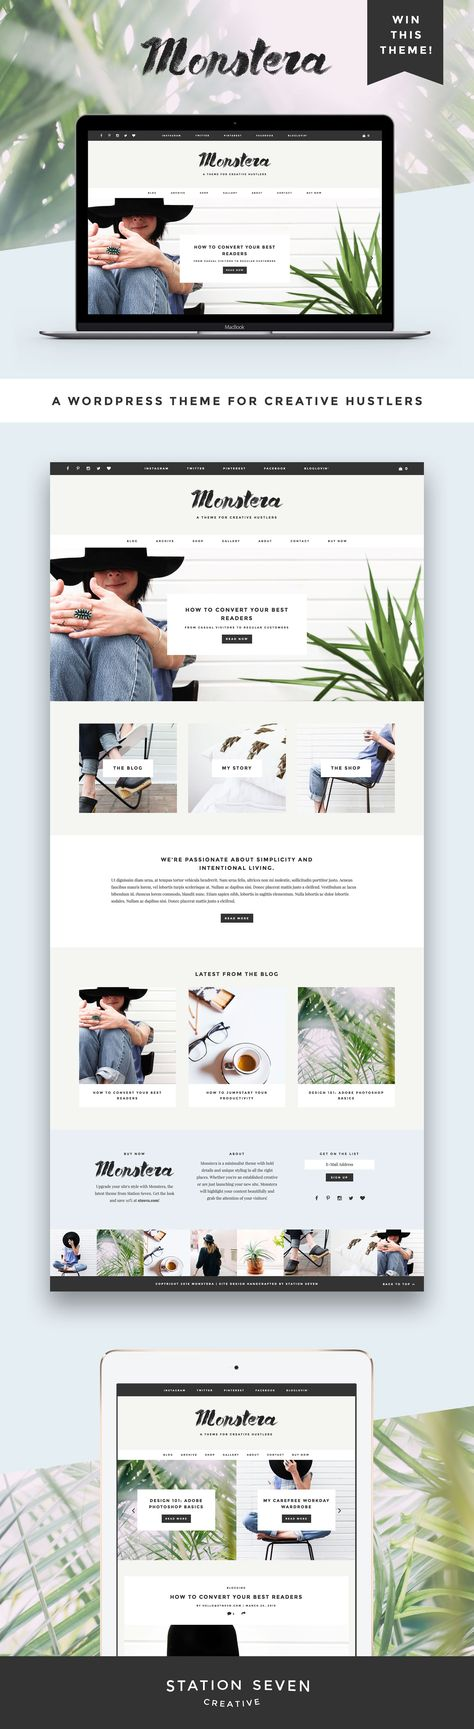 GIVEAWAY! If you've been thinking about sprucing up your blog or web design, there's no time like the present. Simply follow us @creativesintran and repin this pin for a chance to win a free download of our new Monstera WordPress theme! Giveaway ends 4/8/2016 :)